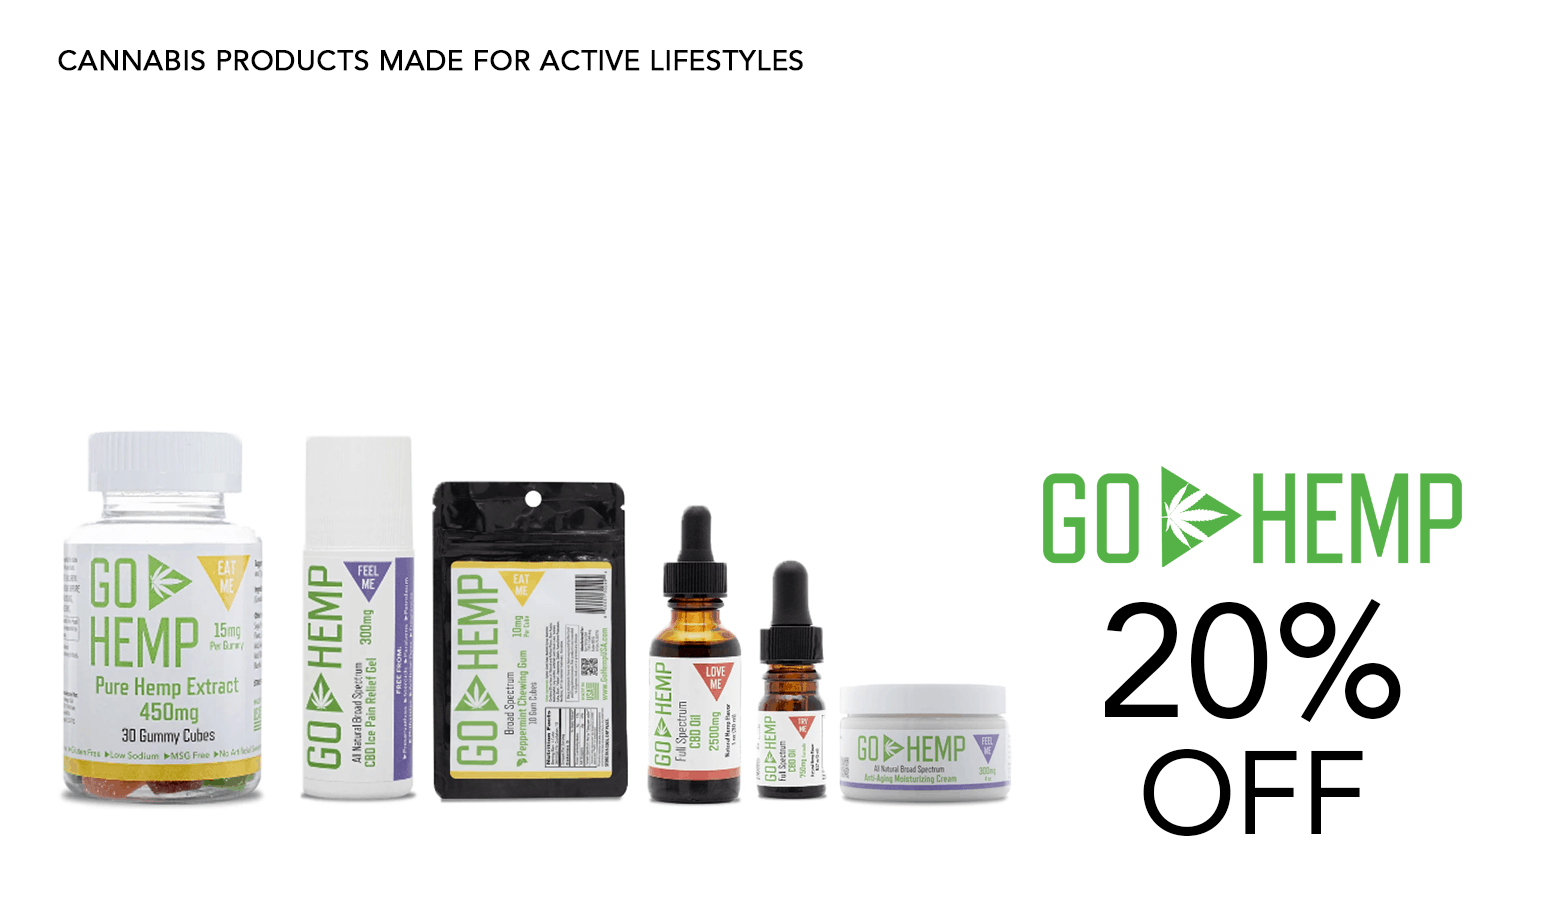 Go Hemp USA CBD Coupon Code Offer Website